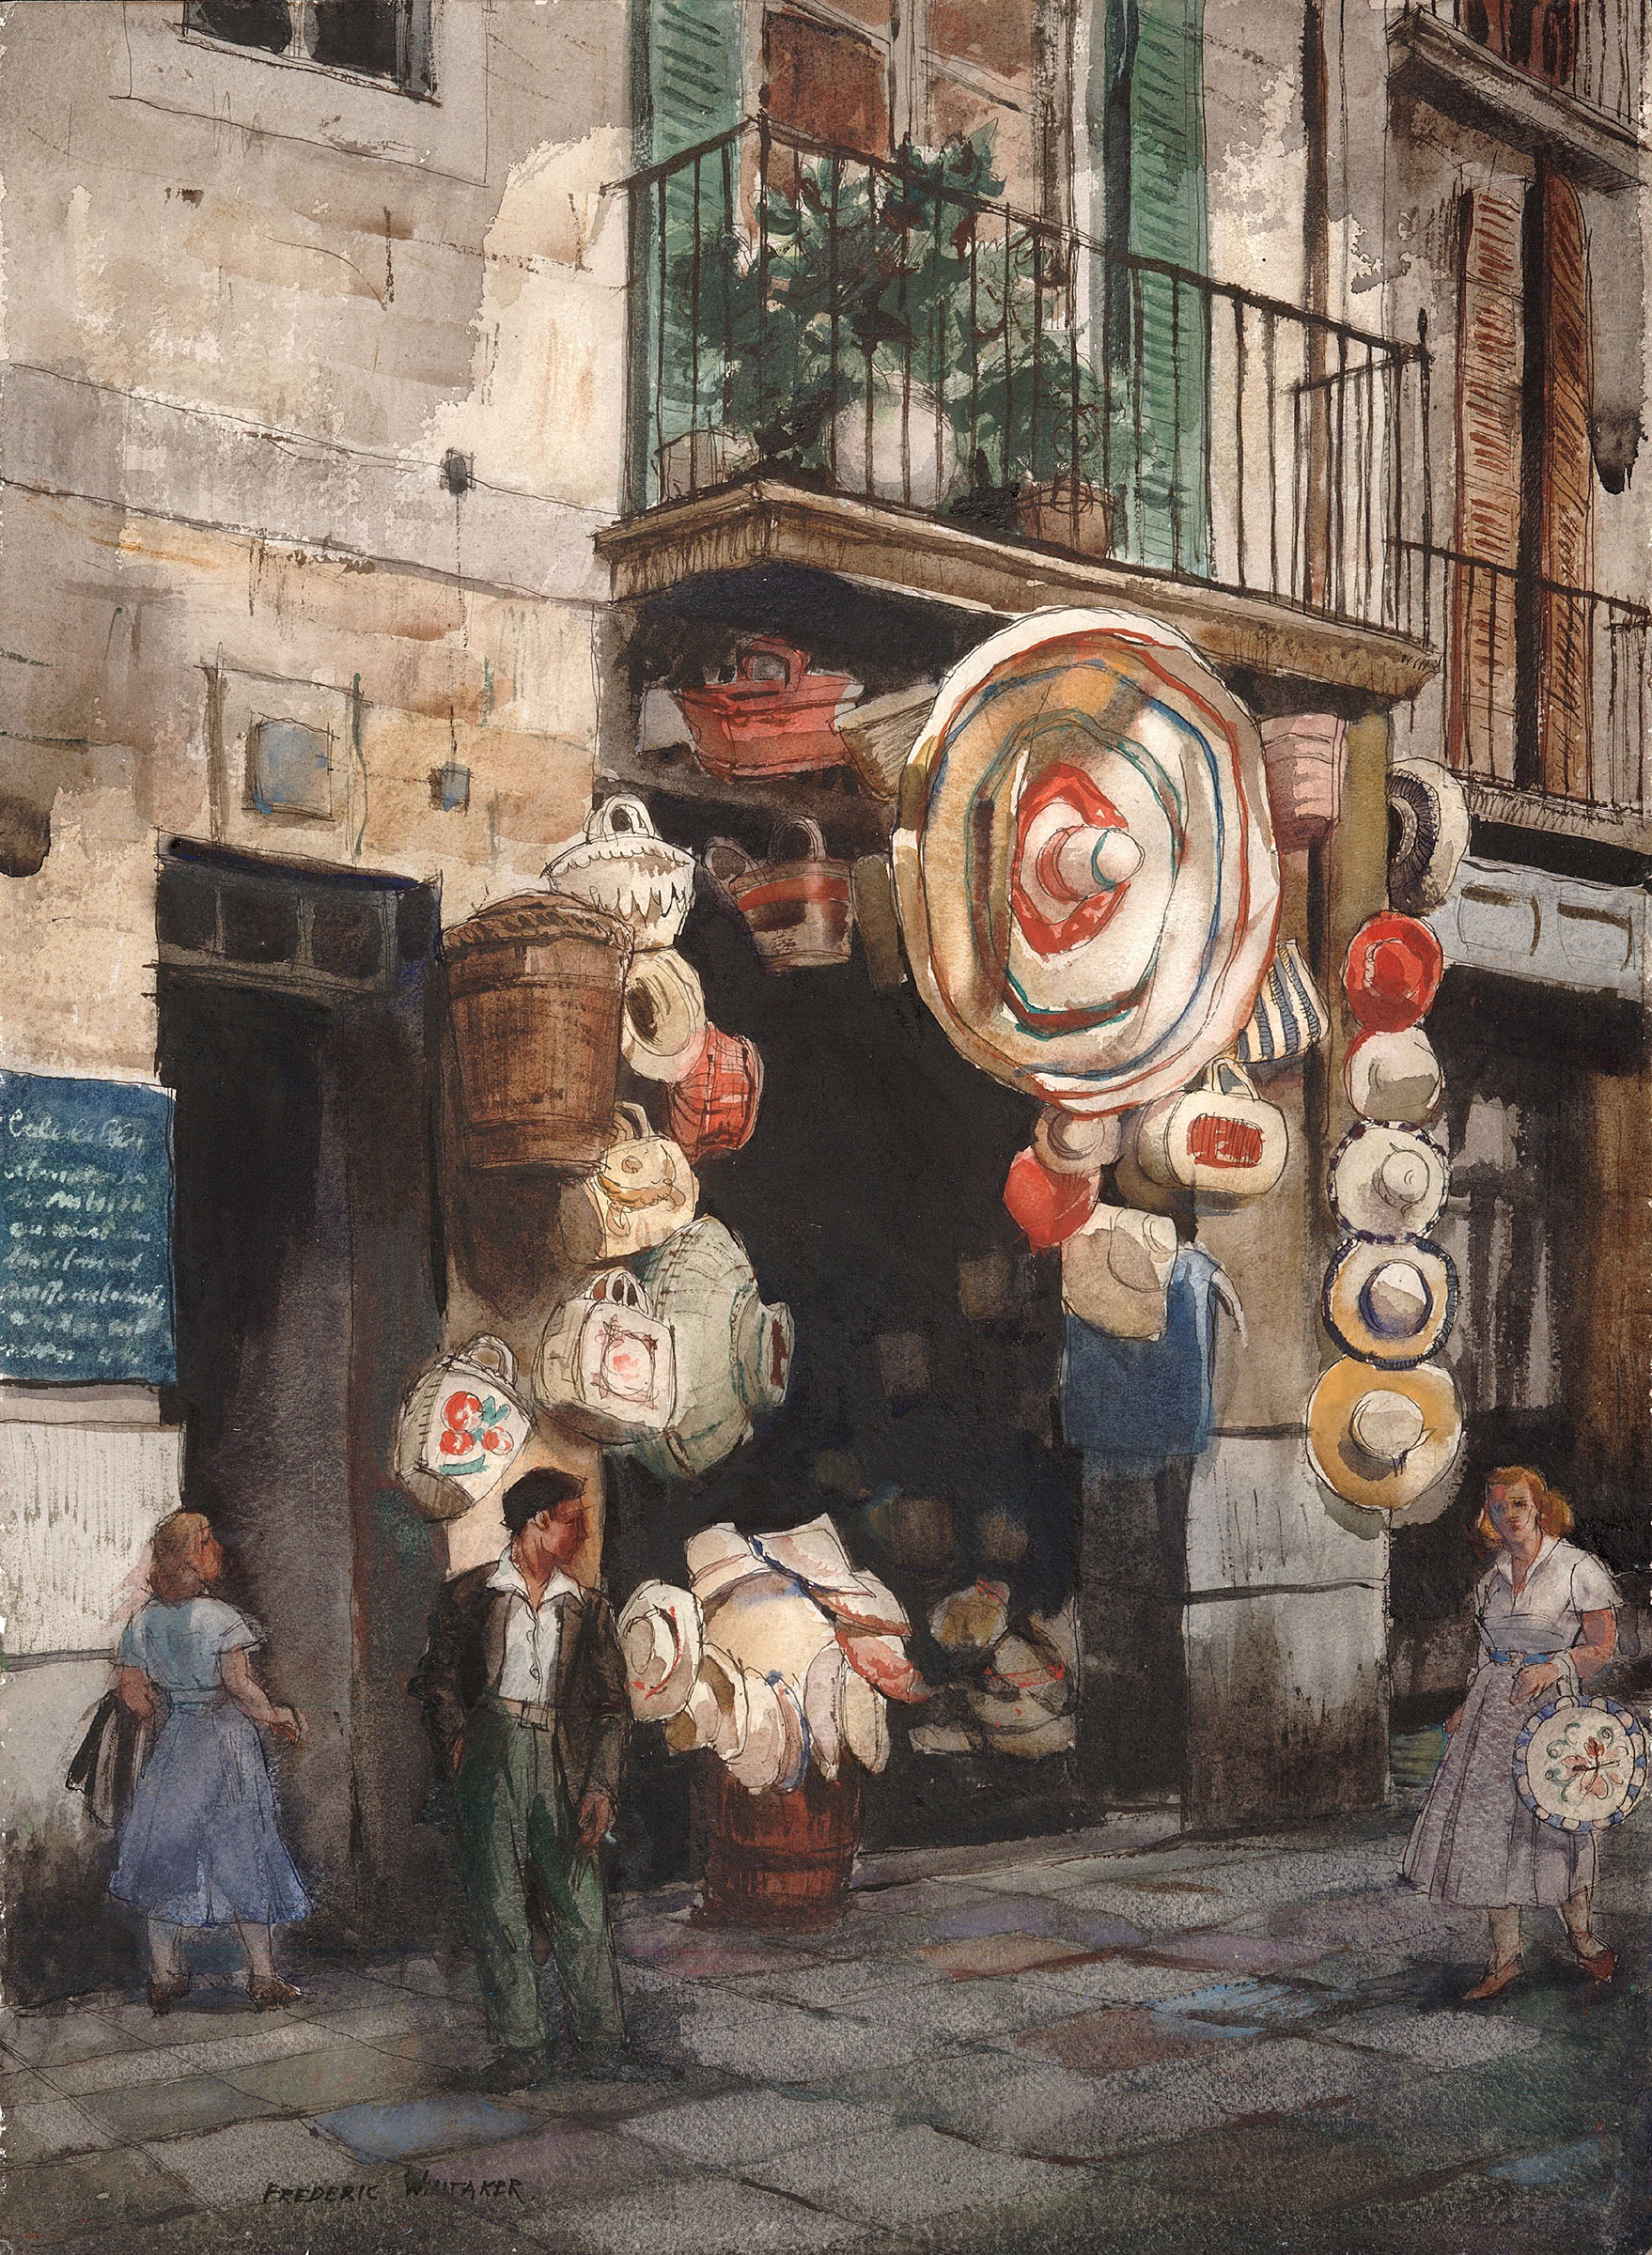 """Hats and Baskets"" 1964 © Frederic Whitaker 30x22 inches Watercolor"